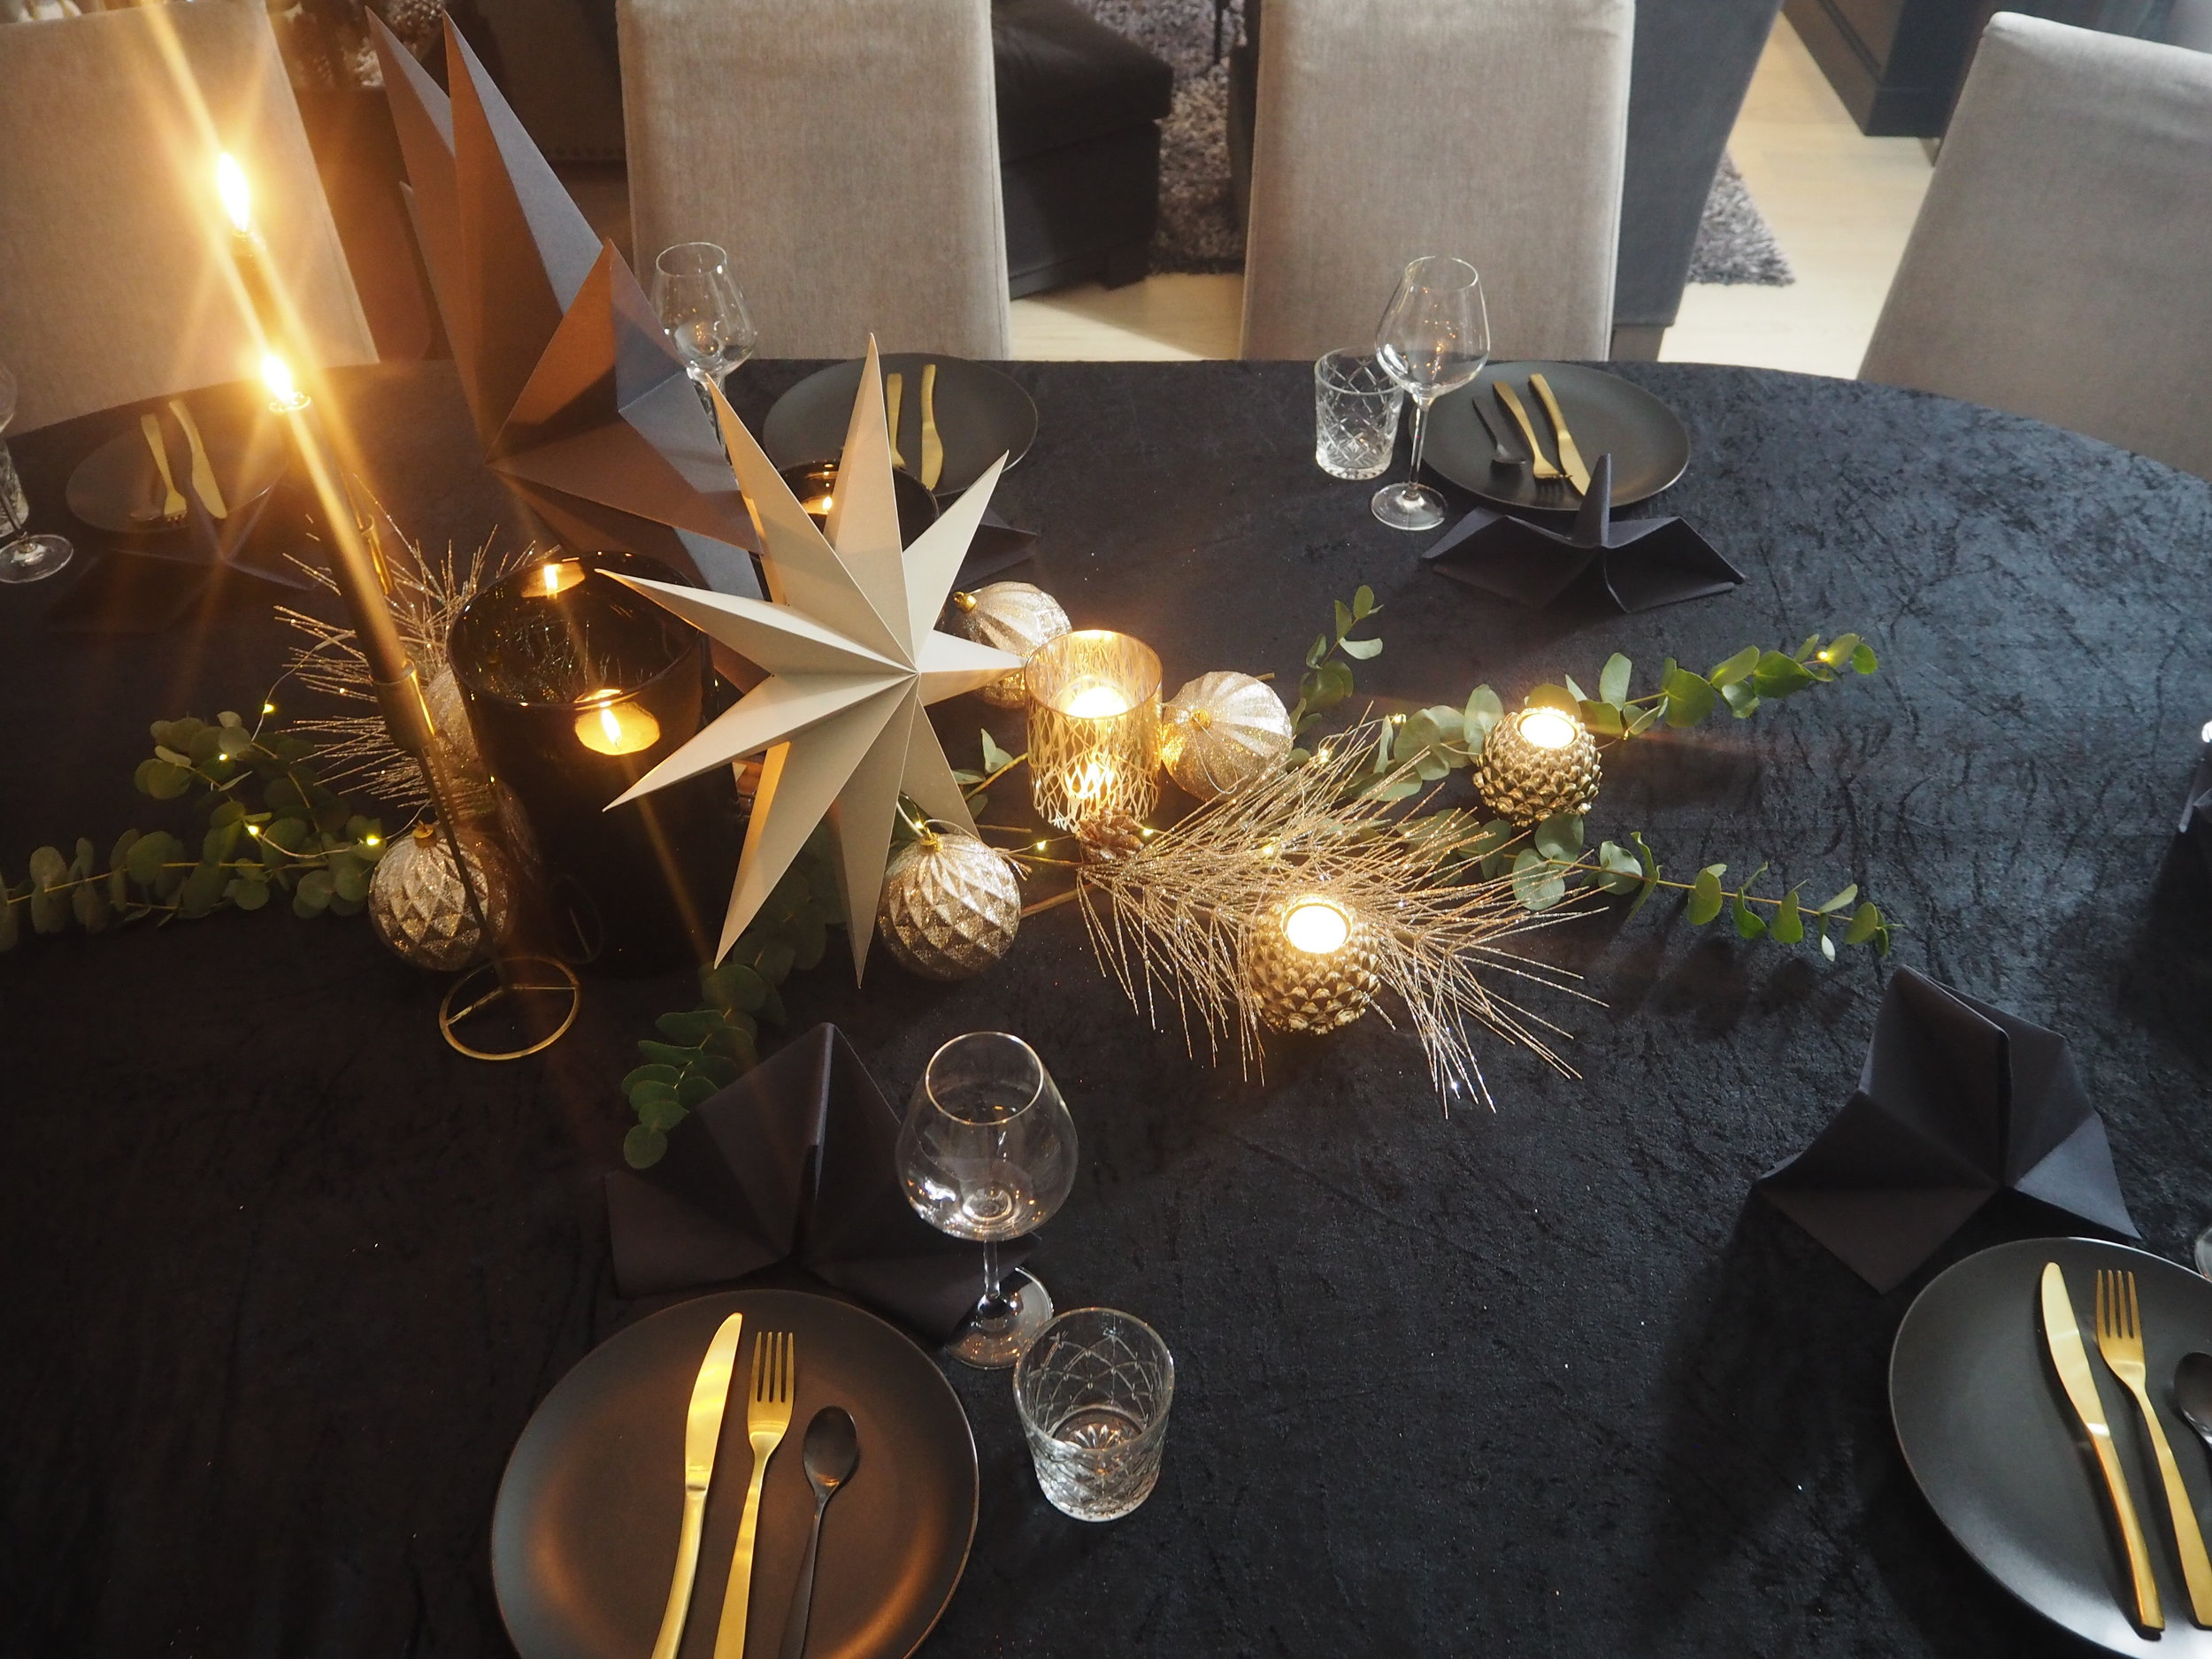 Tablesetting for newyears eve.